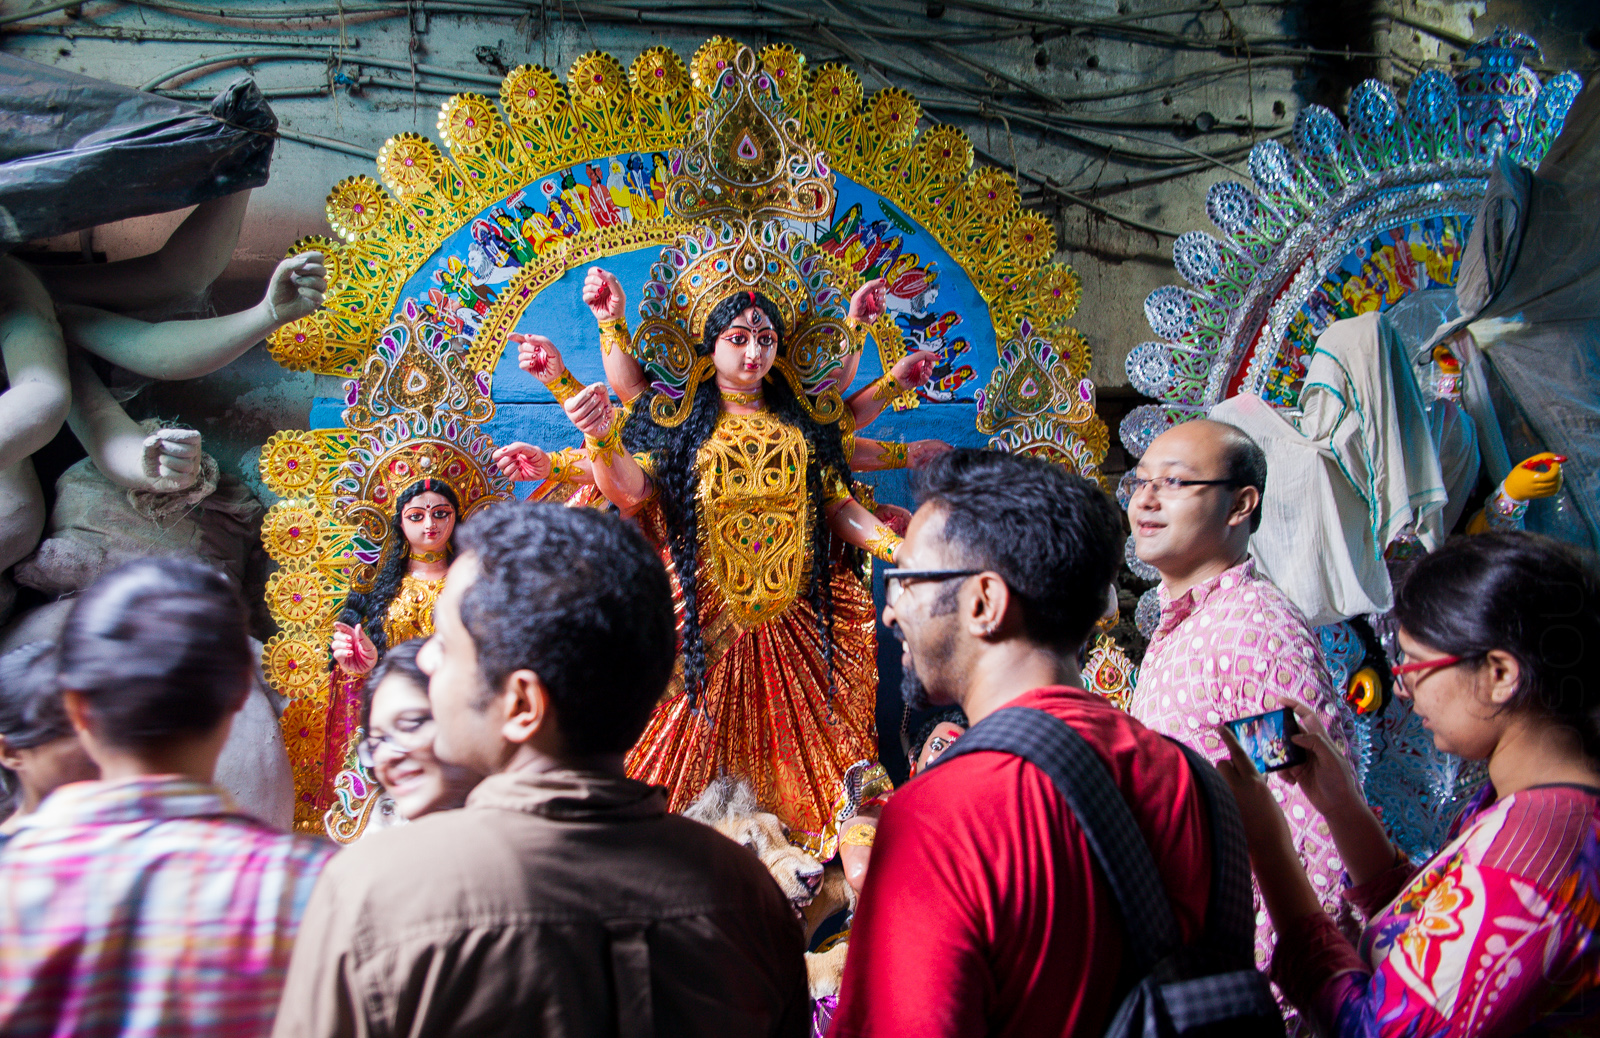 Friends and family share a joke in the presence of Maa Durga